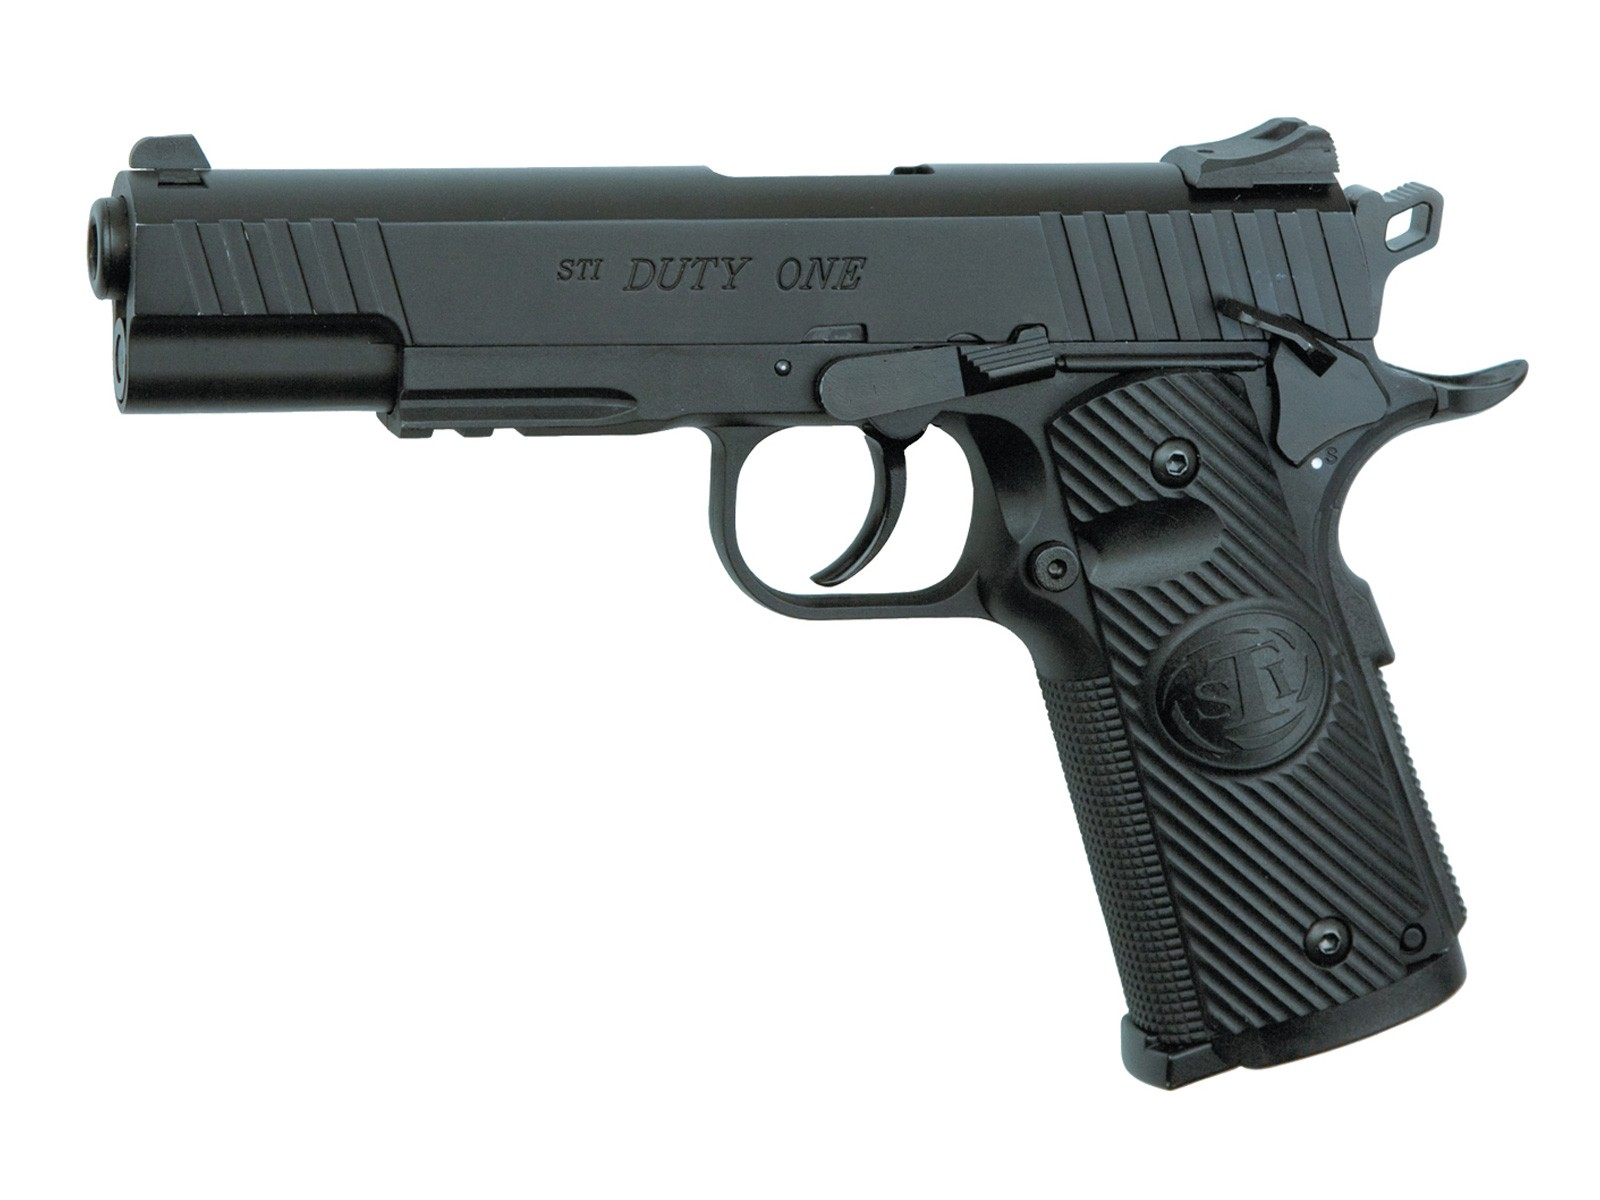 STI Duty One CO2 BB Pistol